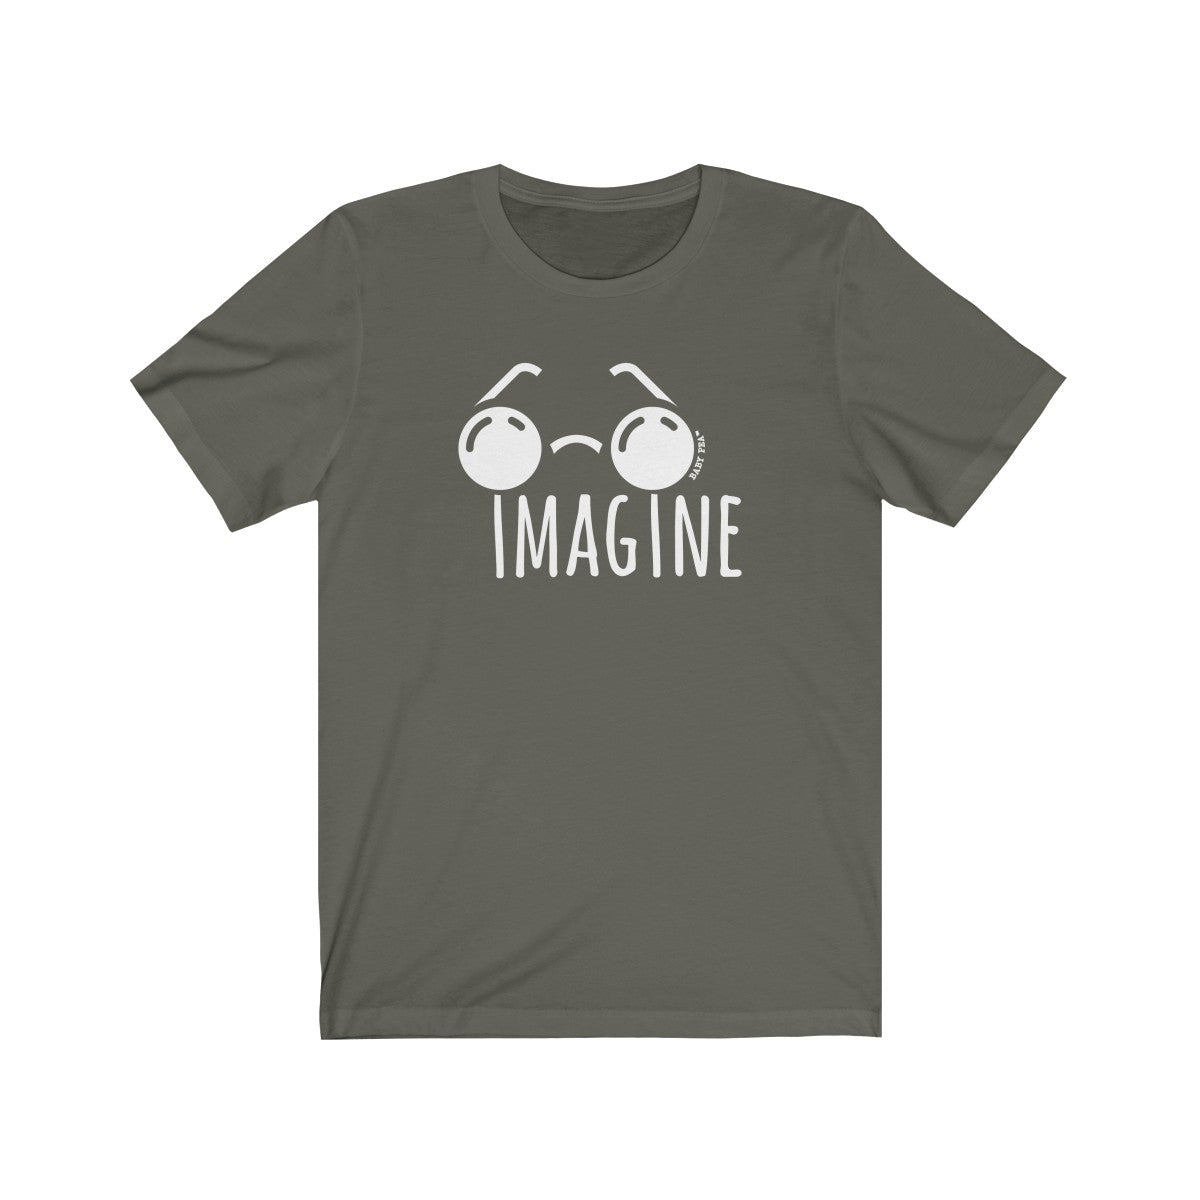 Imagine | Unisex Jersey Short Sleeve Tee | 14 Colors - Baby Pea Clothing Fashion for Babies & Kids of all ages